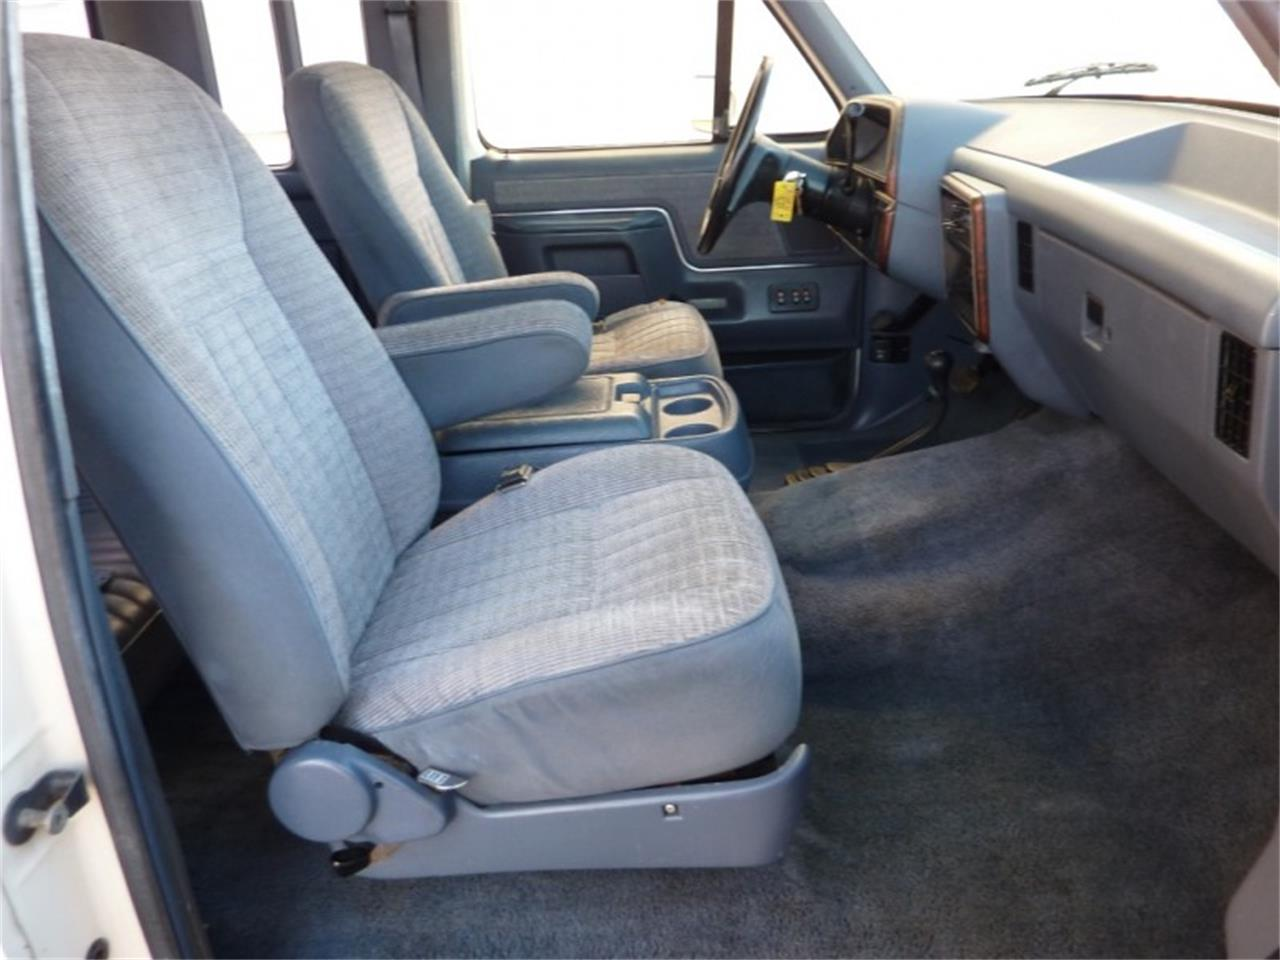 1989 Ford 3/4 Ton Pickup for sale in Pahrump, NV – photo 28